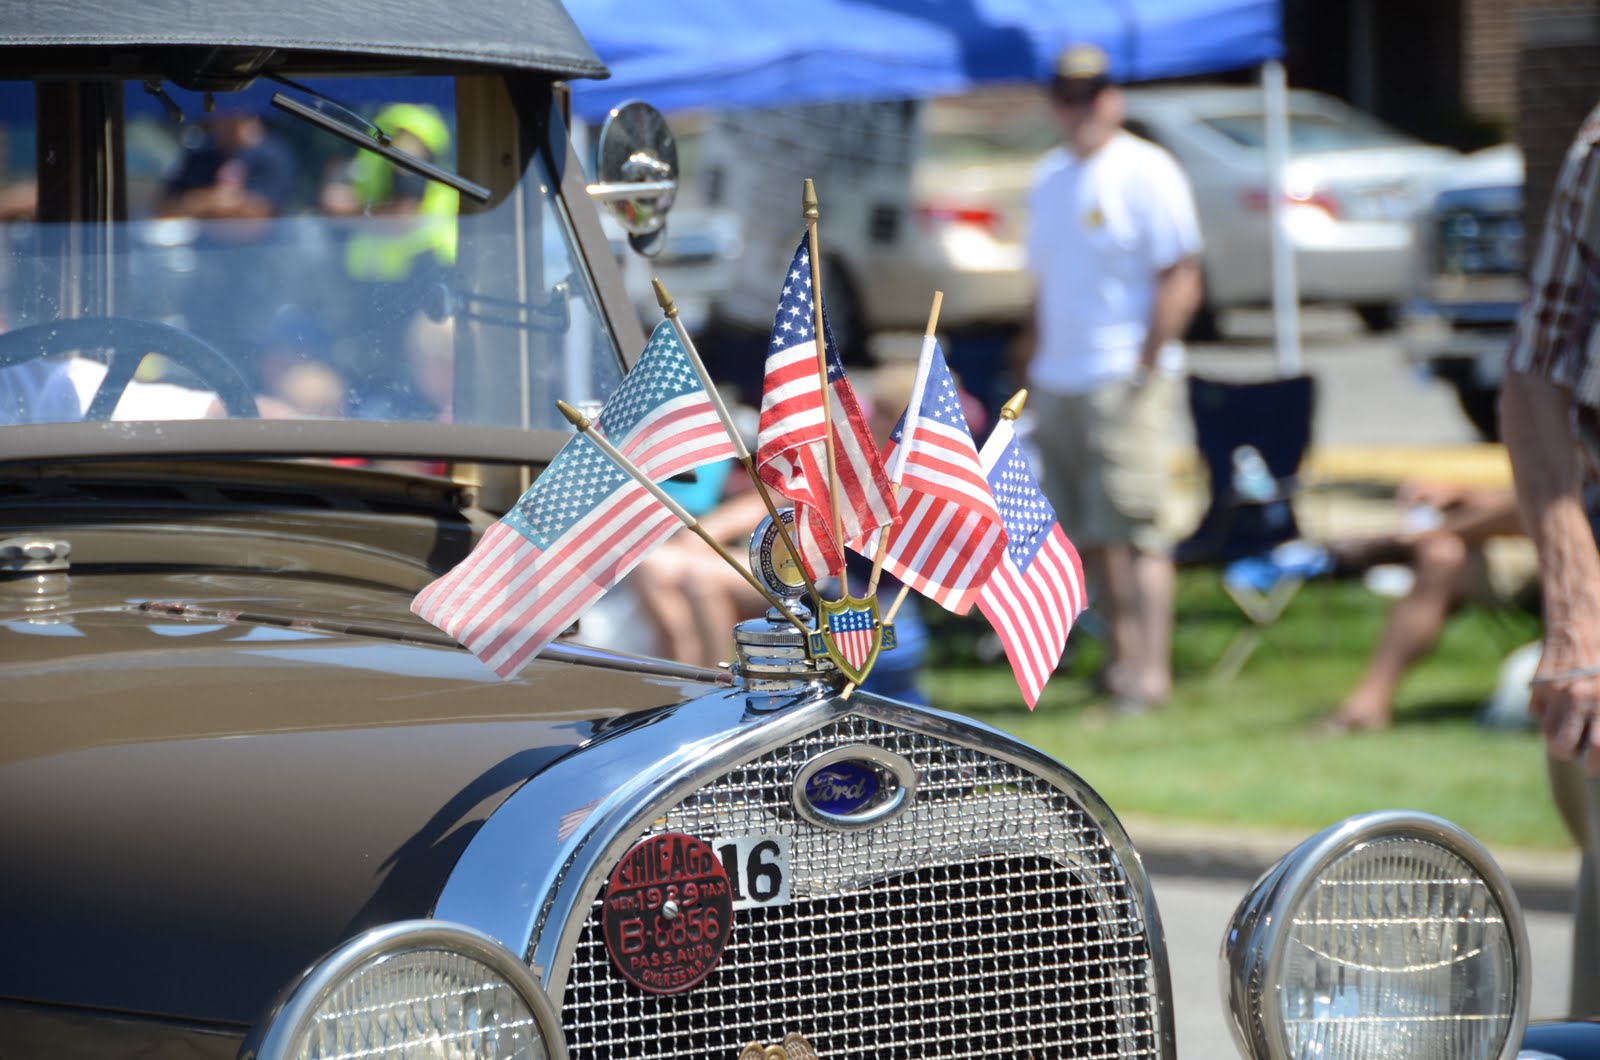 4th of July Flags on Vintage Car in Parade